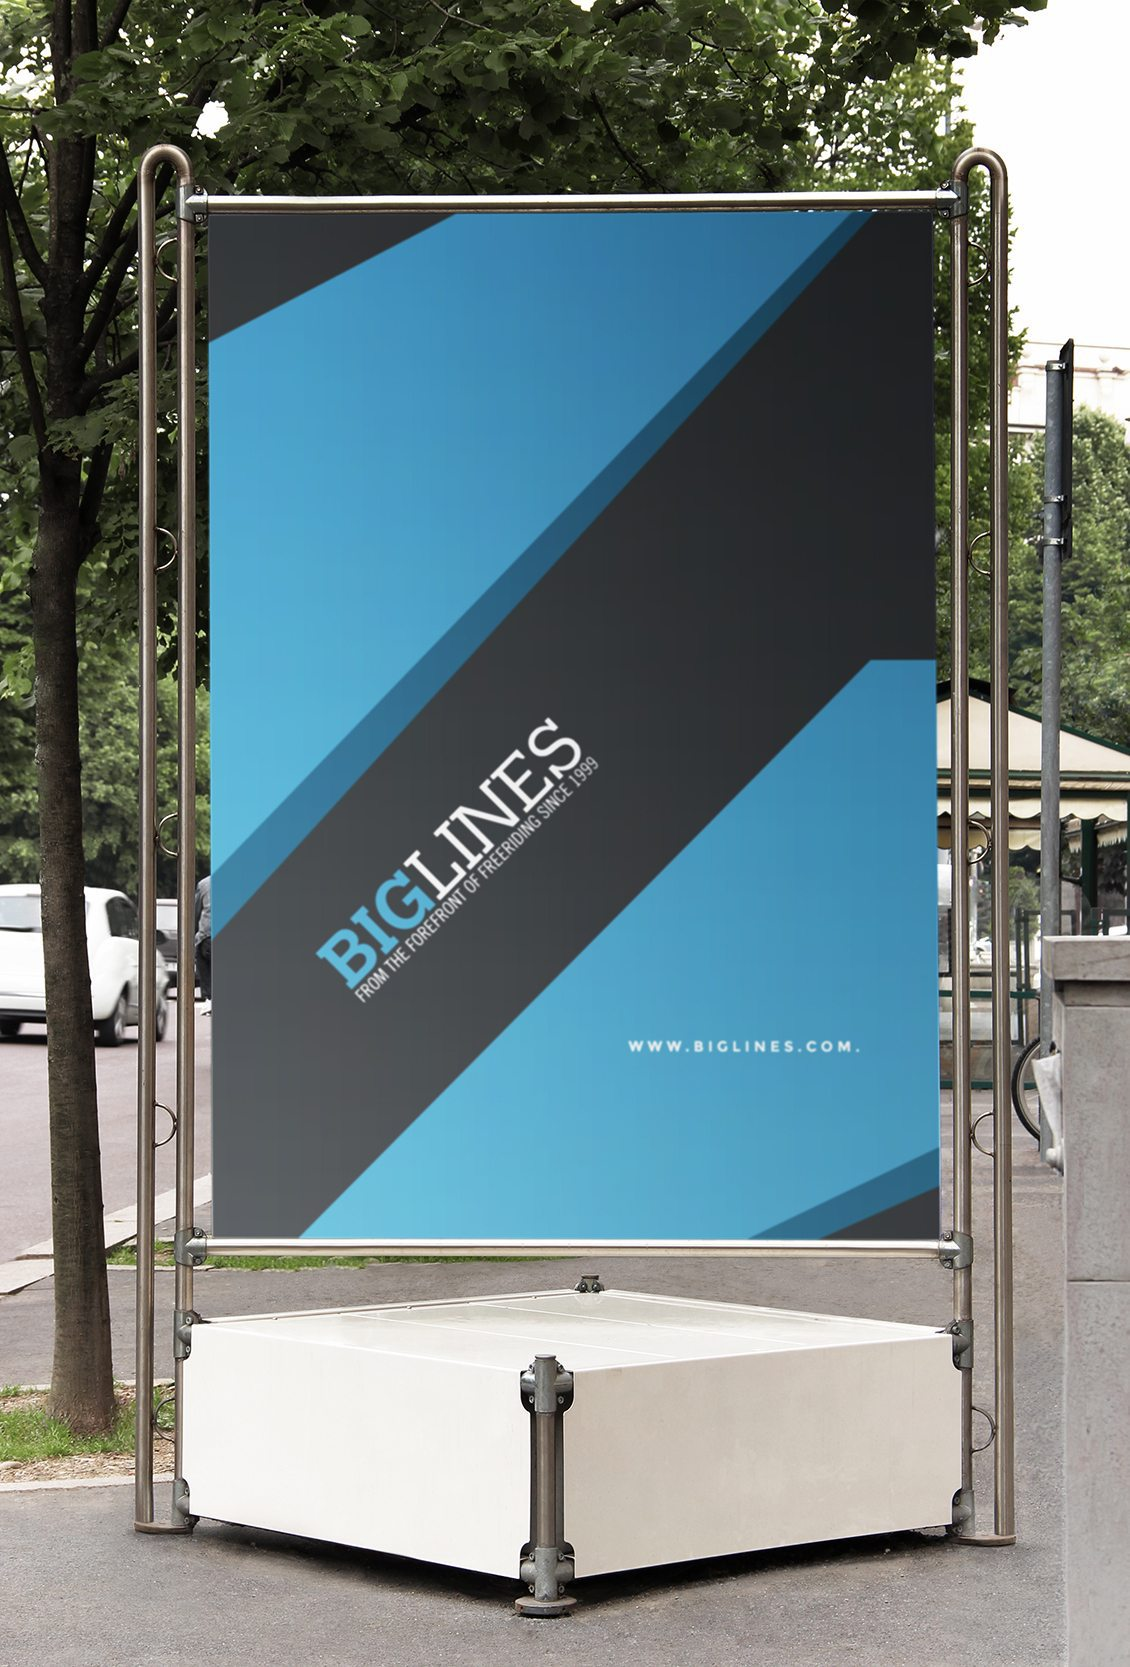 Biglines Advertising Design Calgary